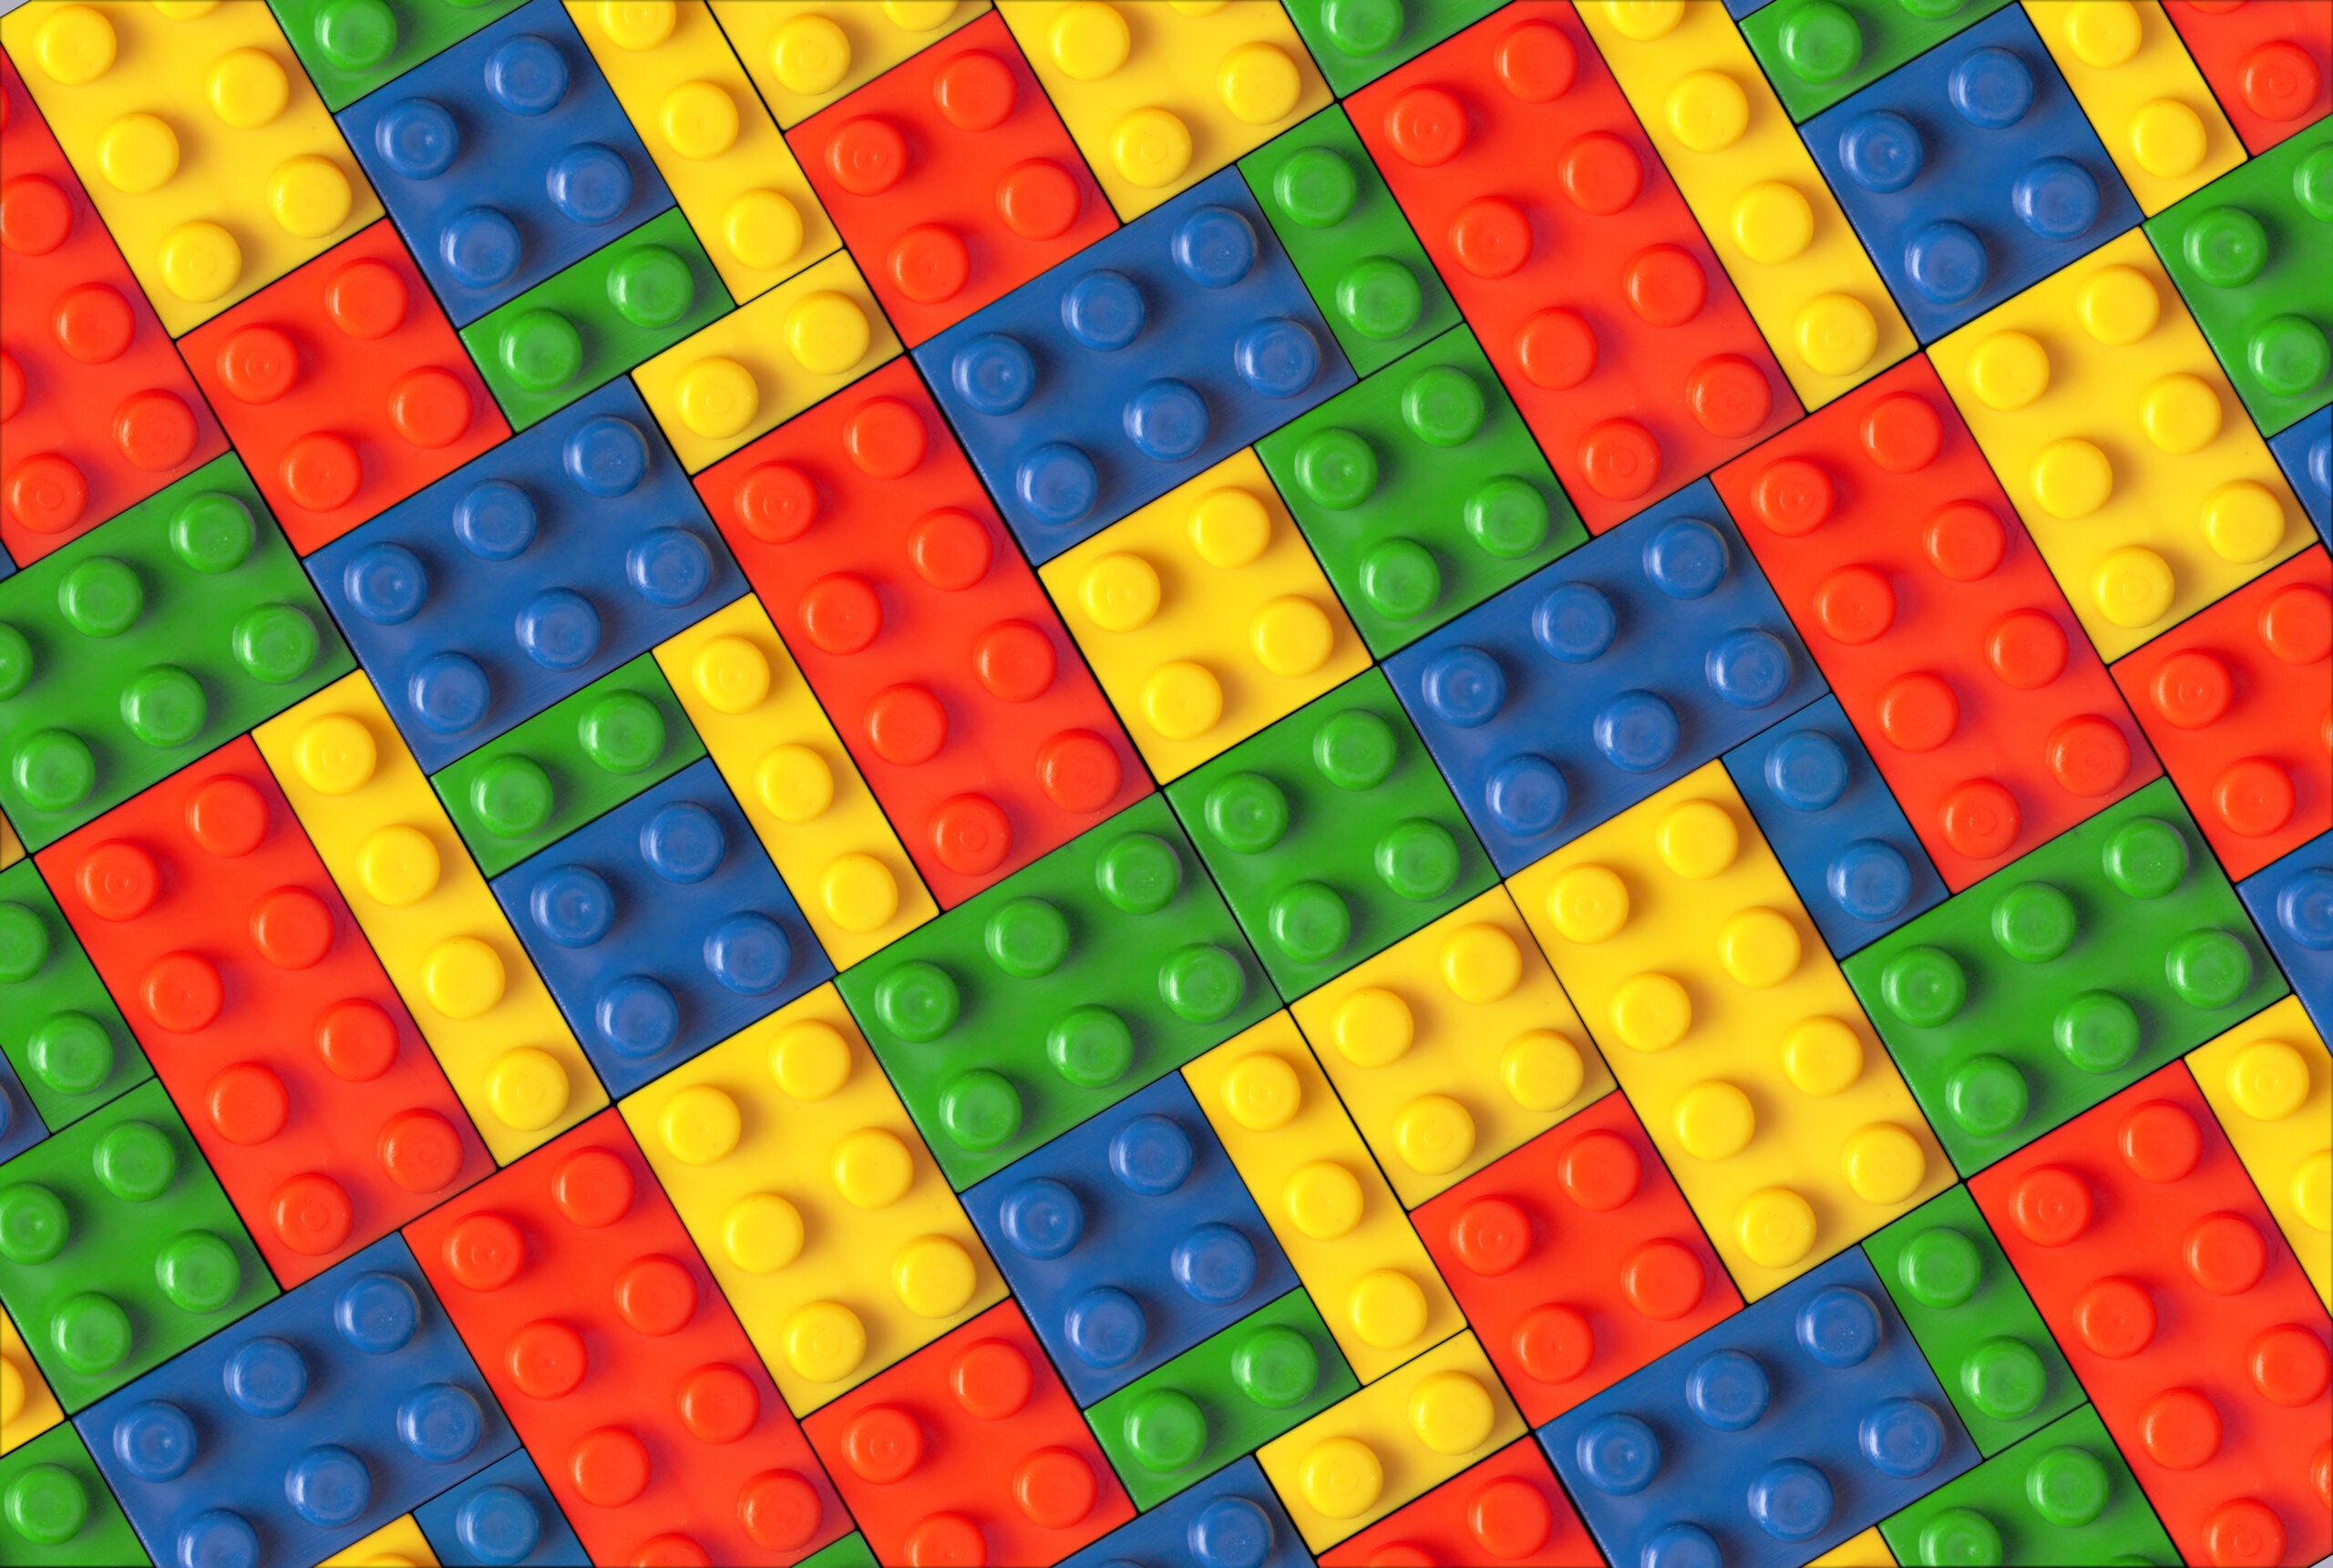 a pattern of colorful lego blocks